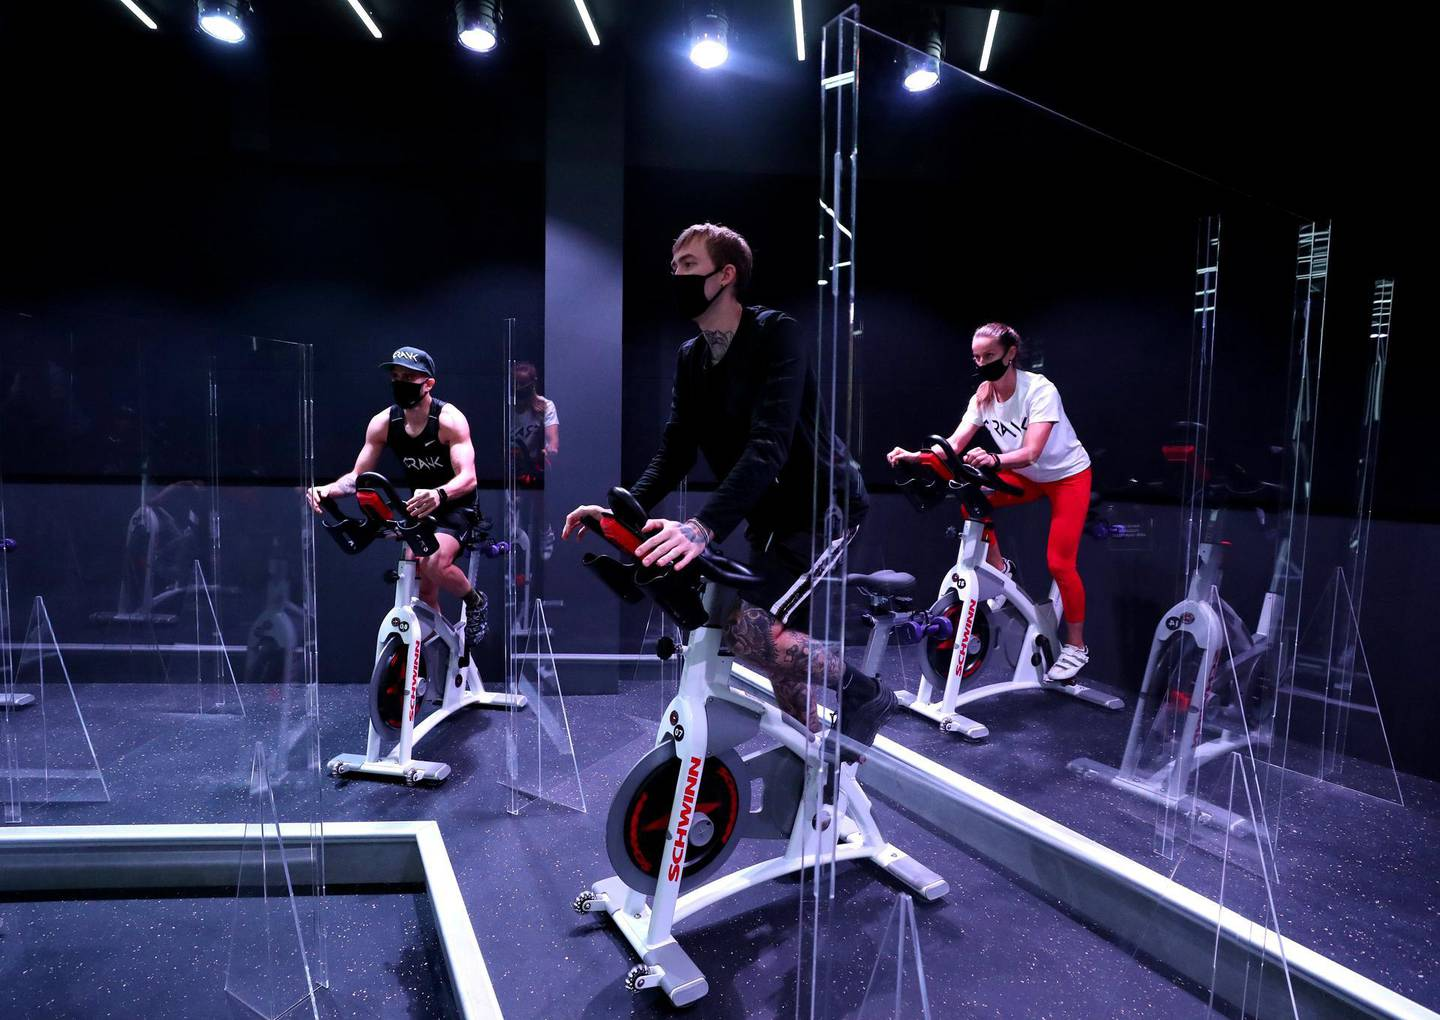 Dubai, United Arab Emirates - Reporter: N/A: News. Covid-19/Coronavirus. Maria, Fraz and Nuno (L) work out. Crank an Indoor Cycling & Boutique Fitness Studio have brought in partitions between bikes to protect their customers from Covid-19. Monday, June 1st, 2020. Dubai. Chris Whiteoak / The National